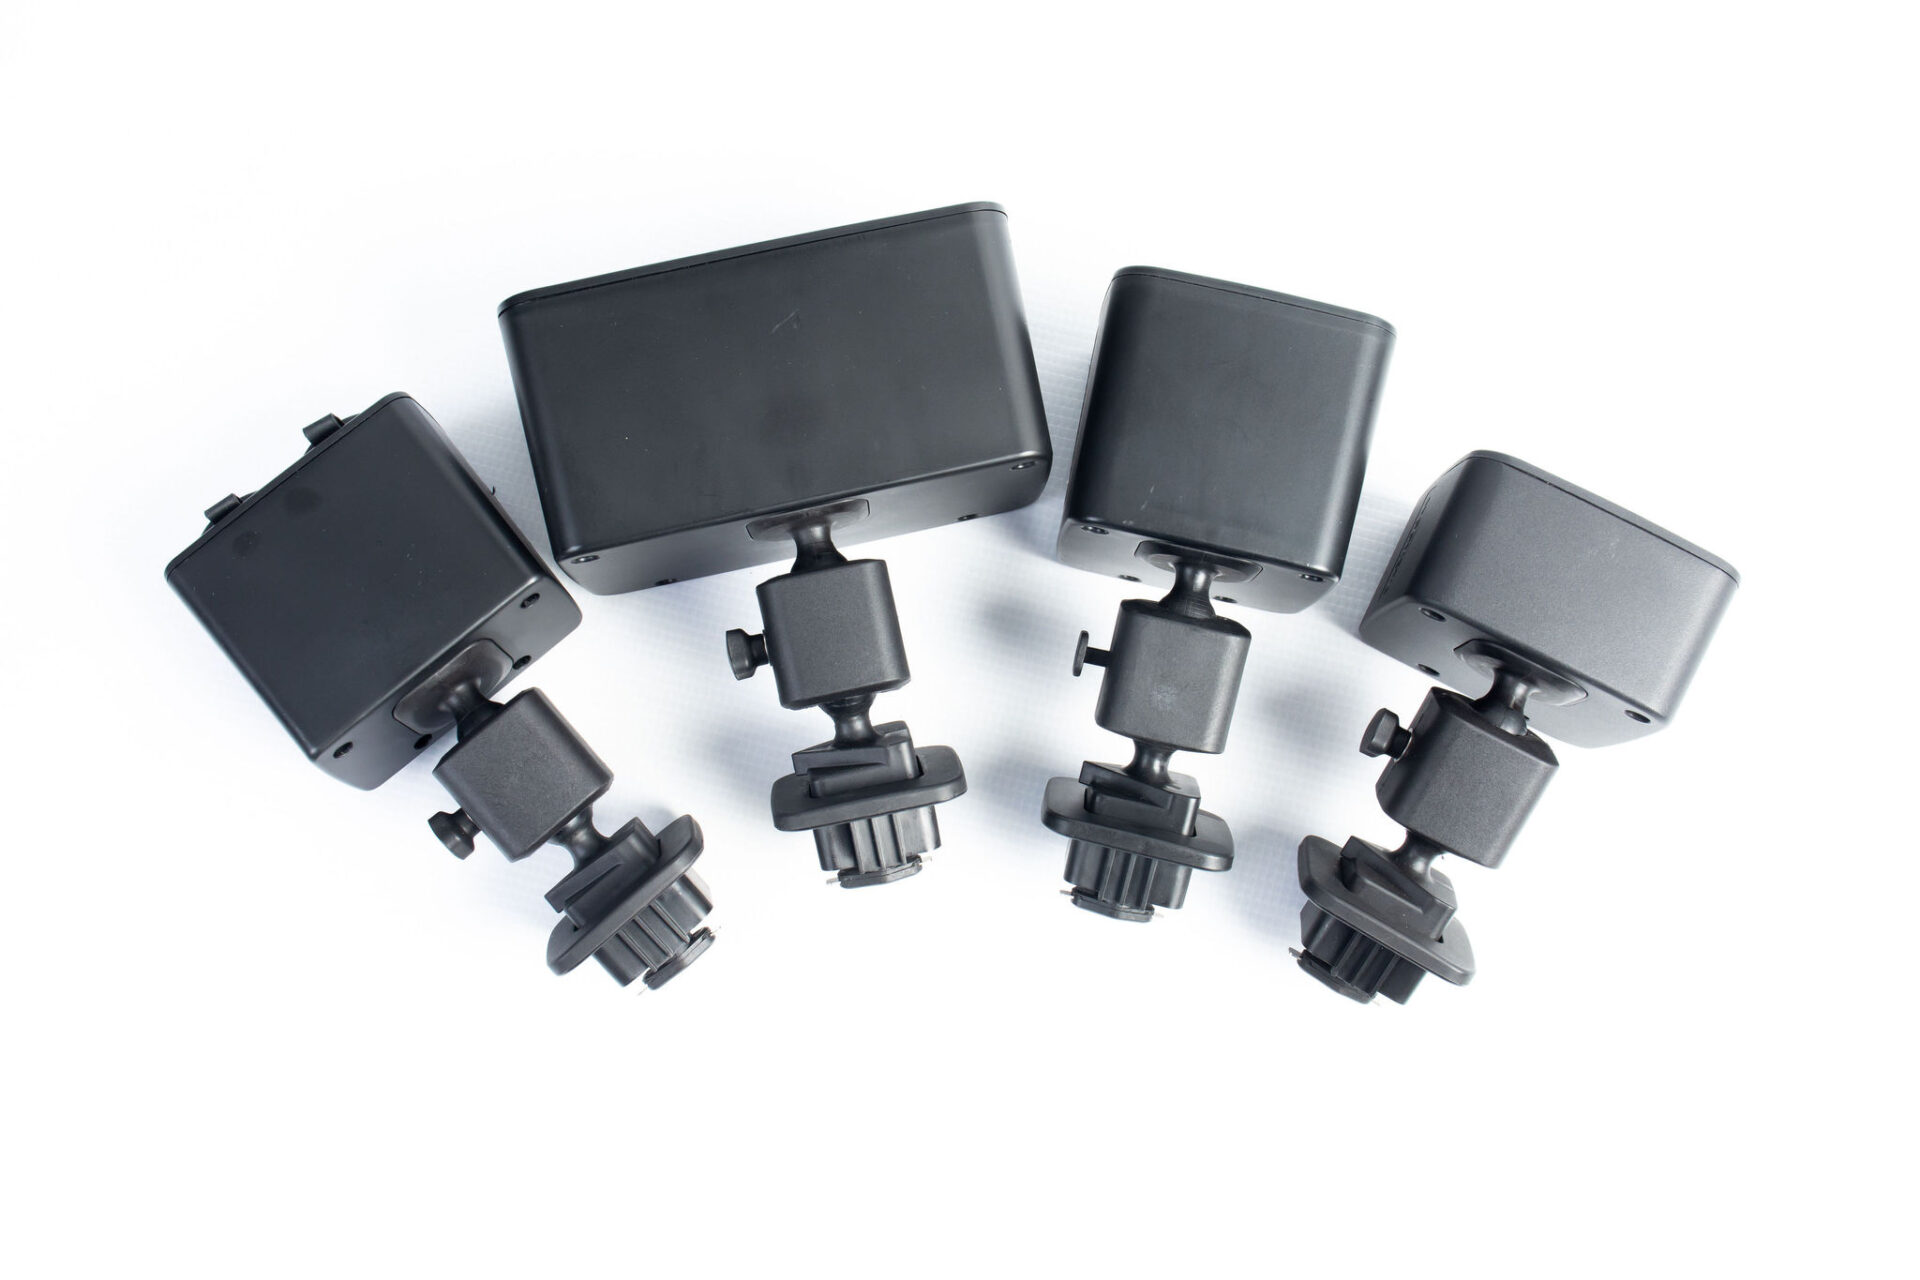 miscellaneous black plastic mounting devices